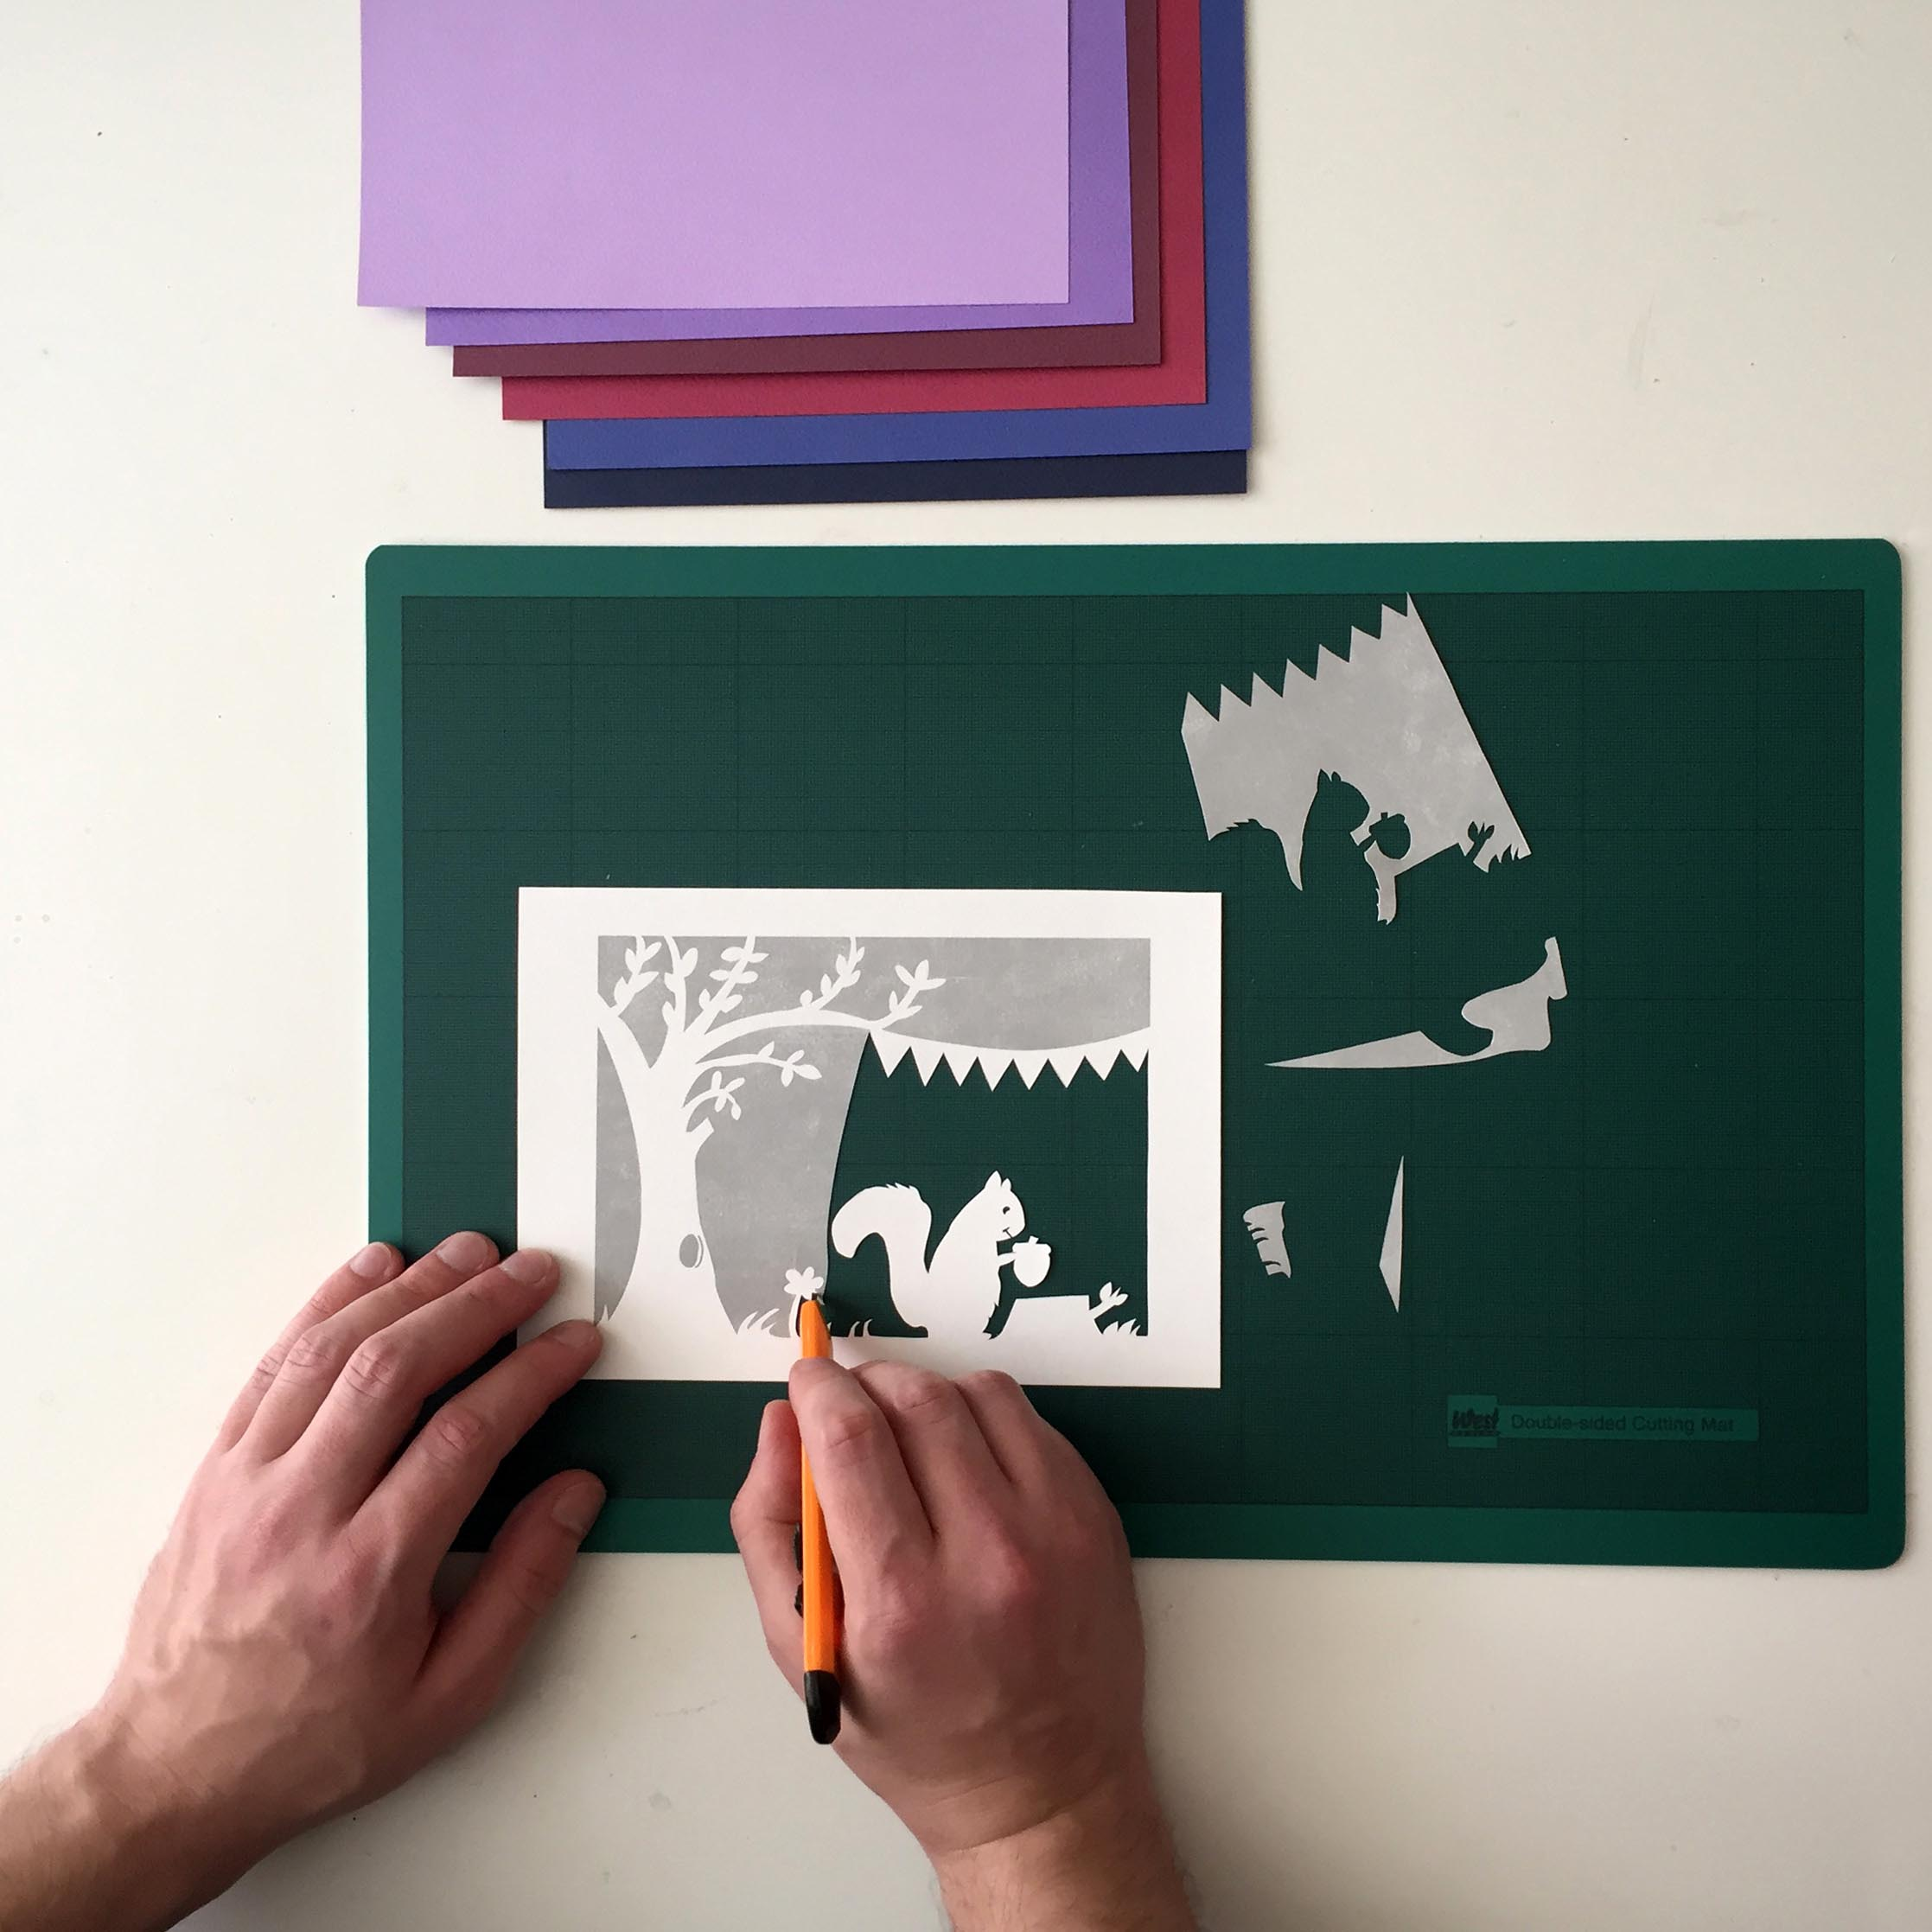 paper cutting workshop showing cutting in progress on a practice sheet